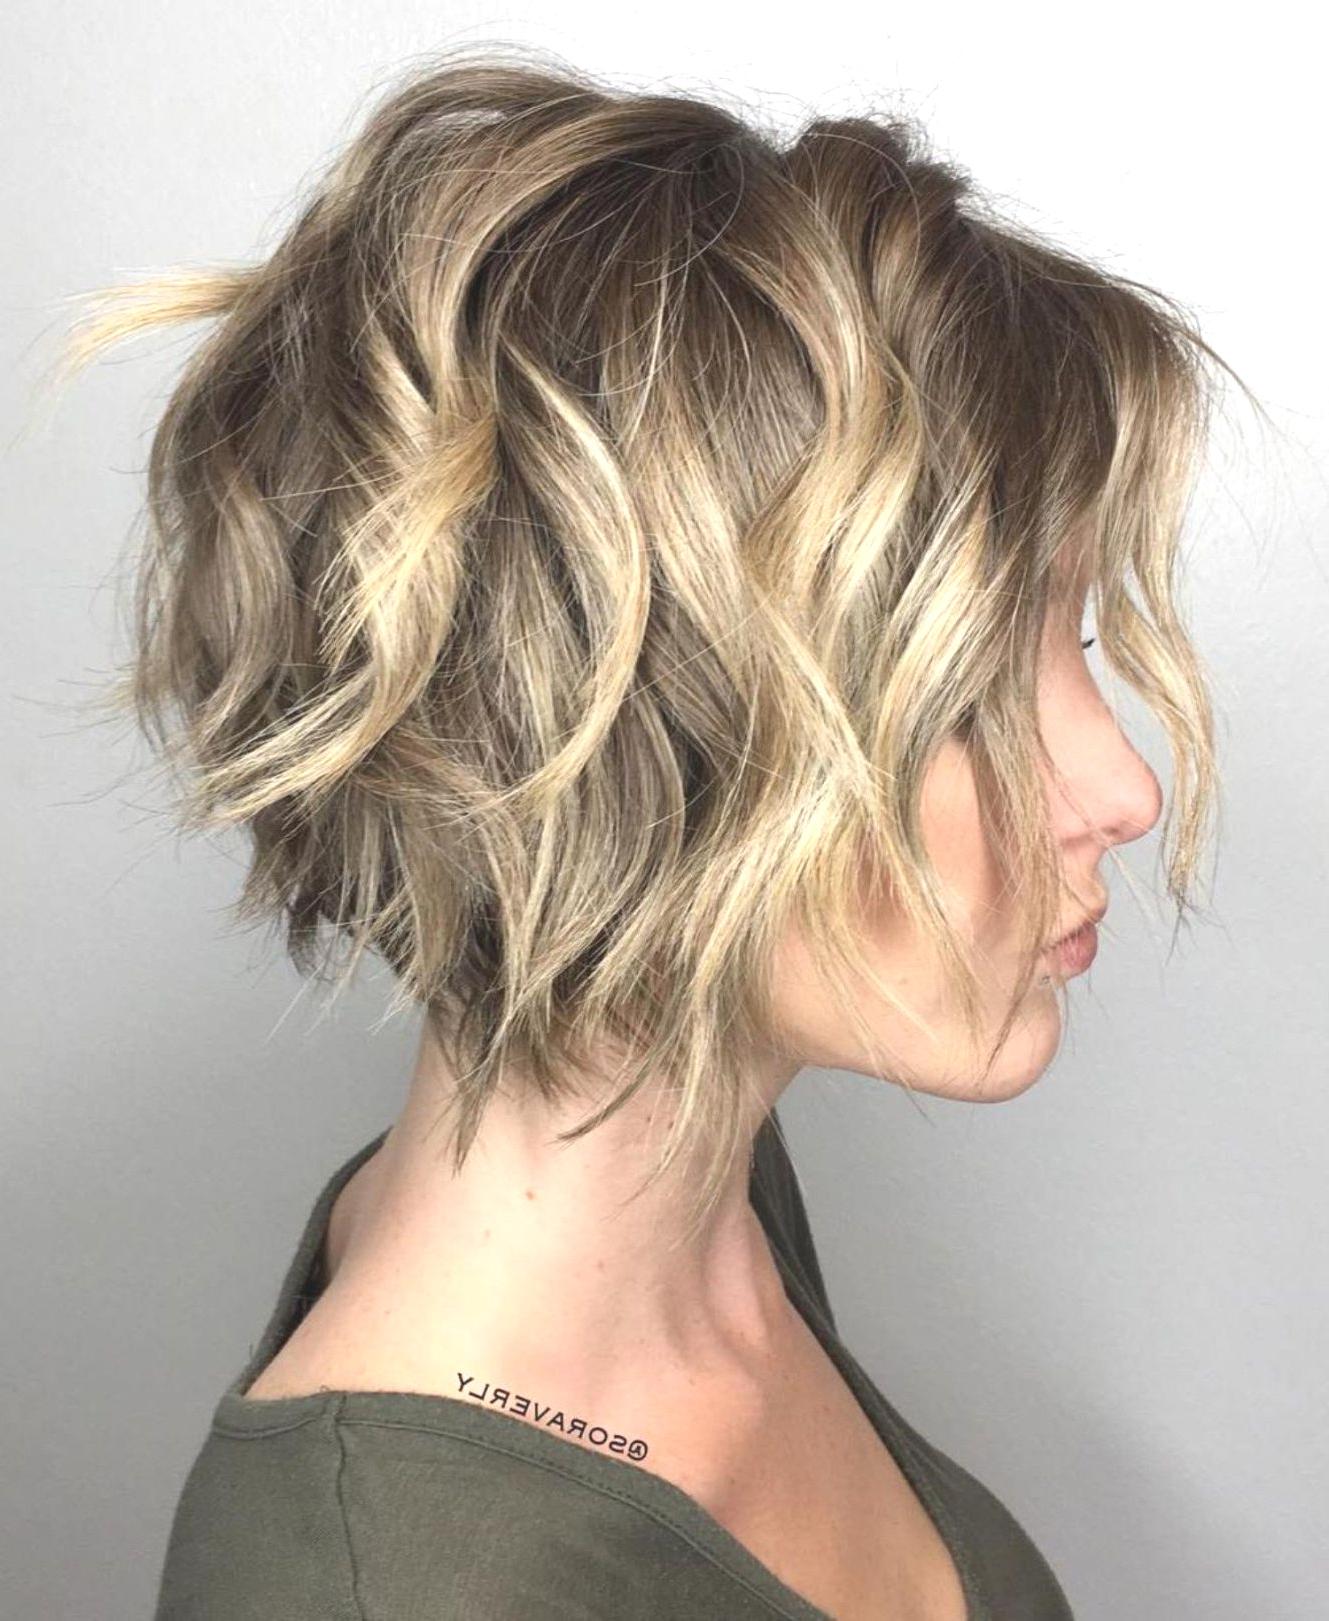 Hairstyles : Messy Layered Short Hair Magnificent 100 Mind Blowing In Latest Messy Layered Haircuts For Fine Hair (View 17 of 20)